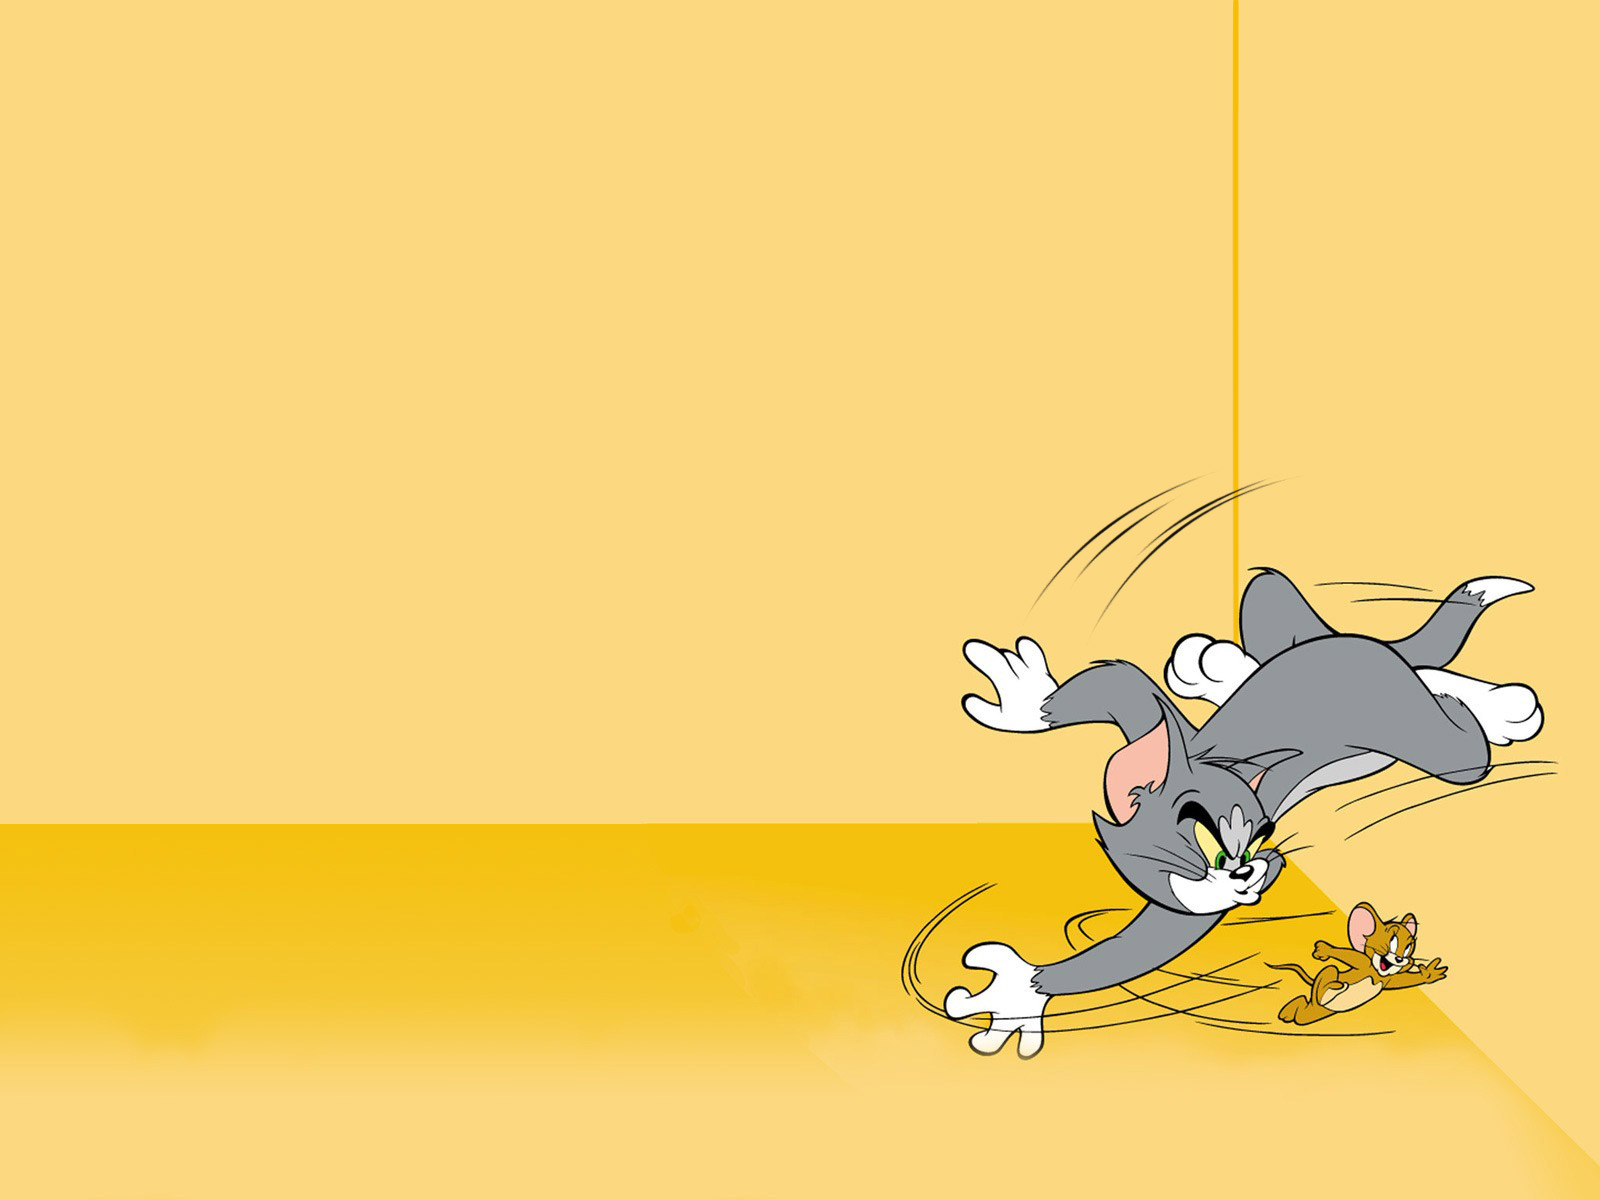 Free Tom and Jerry Cartoon Background for Powerpoint Slides